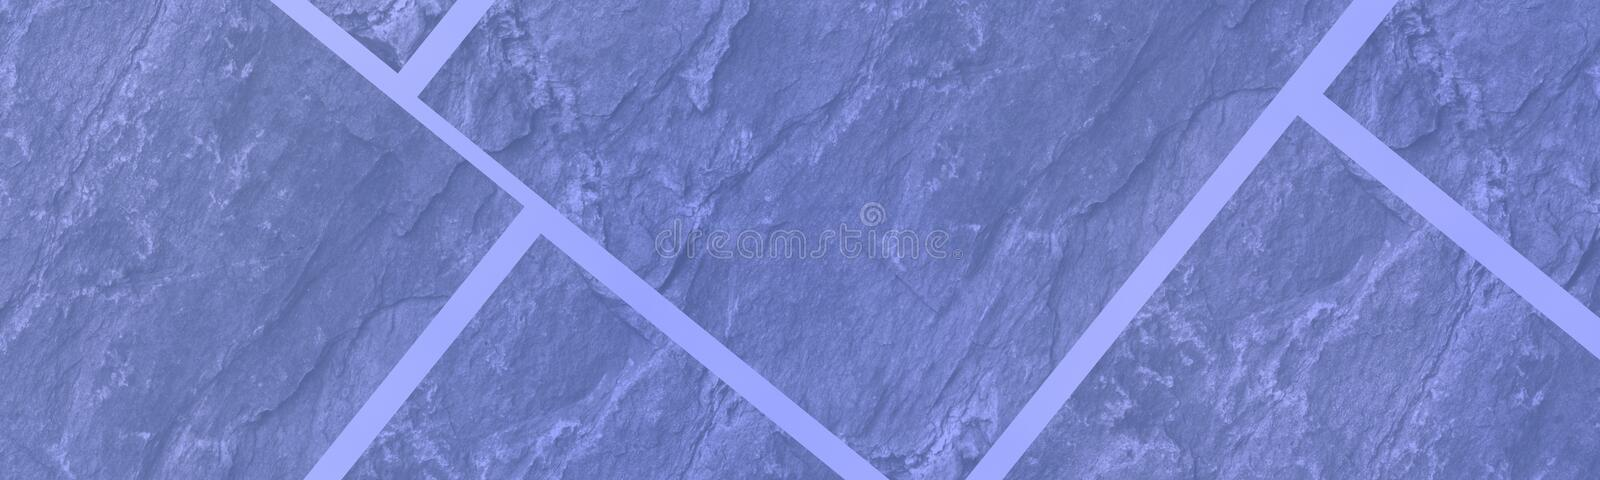 Crop view of stone background. Blue color texture stock images